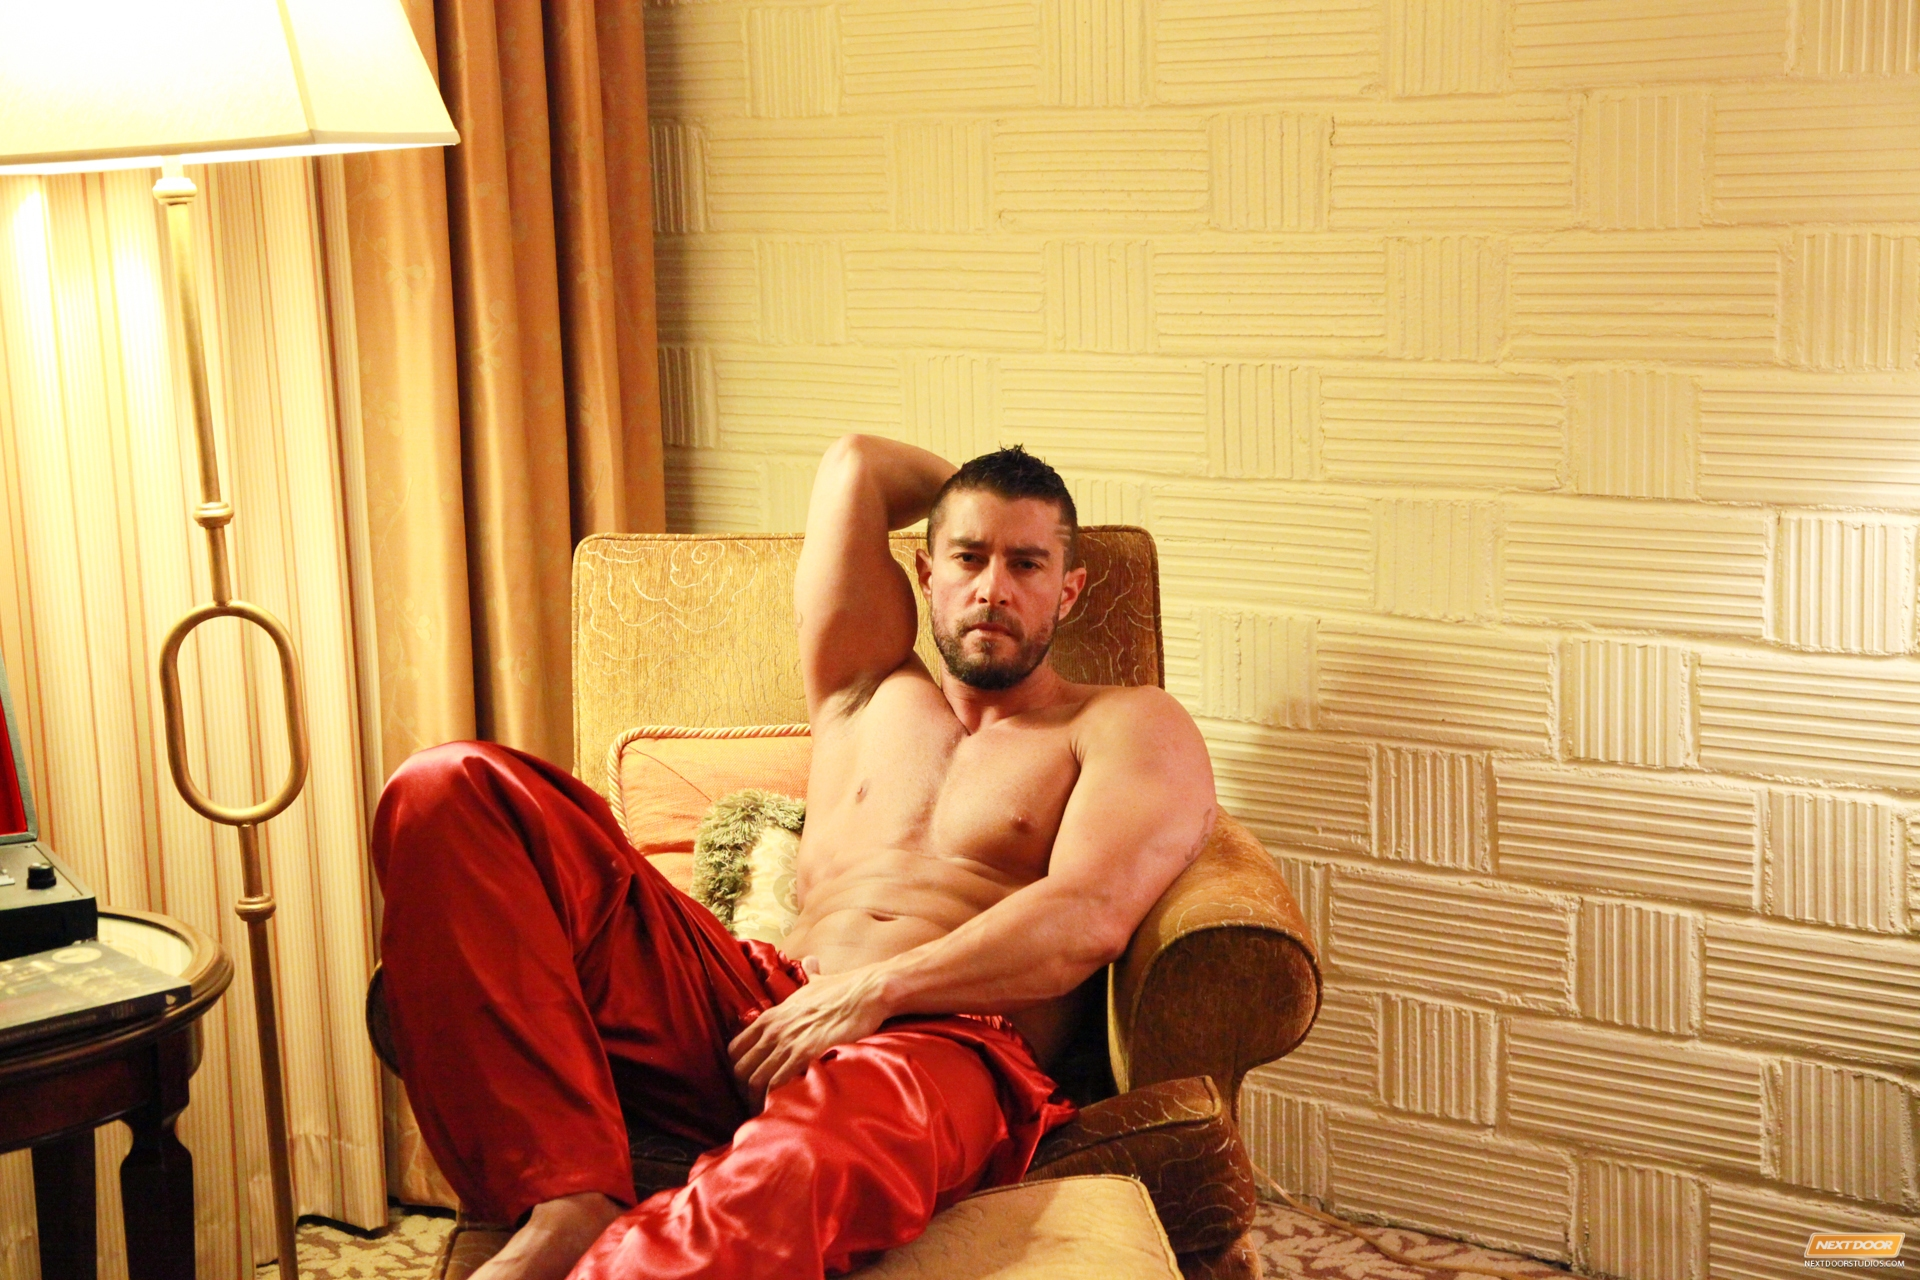 When Cody Cummings inappropriate to for pleasure, he doesn't dare deprive himself of a single severe luxury his heart desires.  Be it excellent linens, silky robes, delights for the palette, or repose lustful titillation.  This time, he's elected follow i